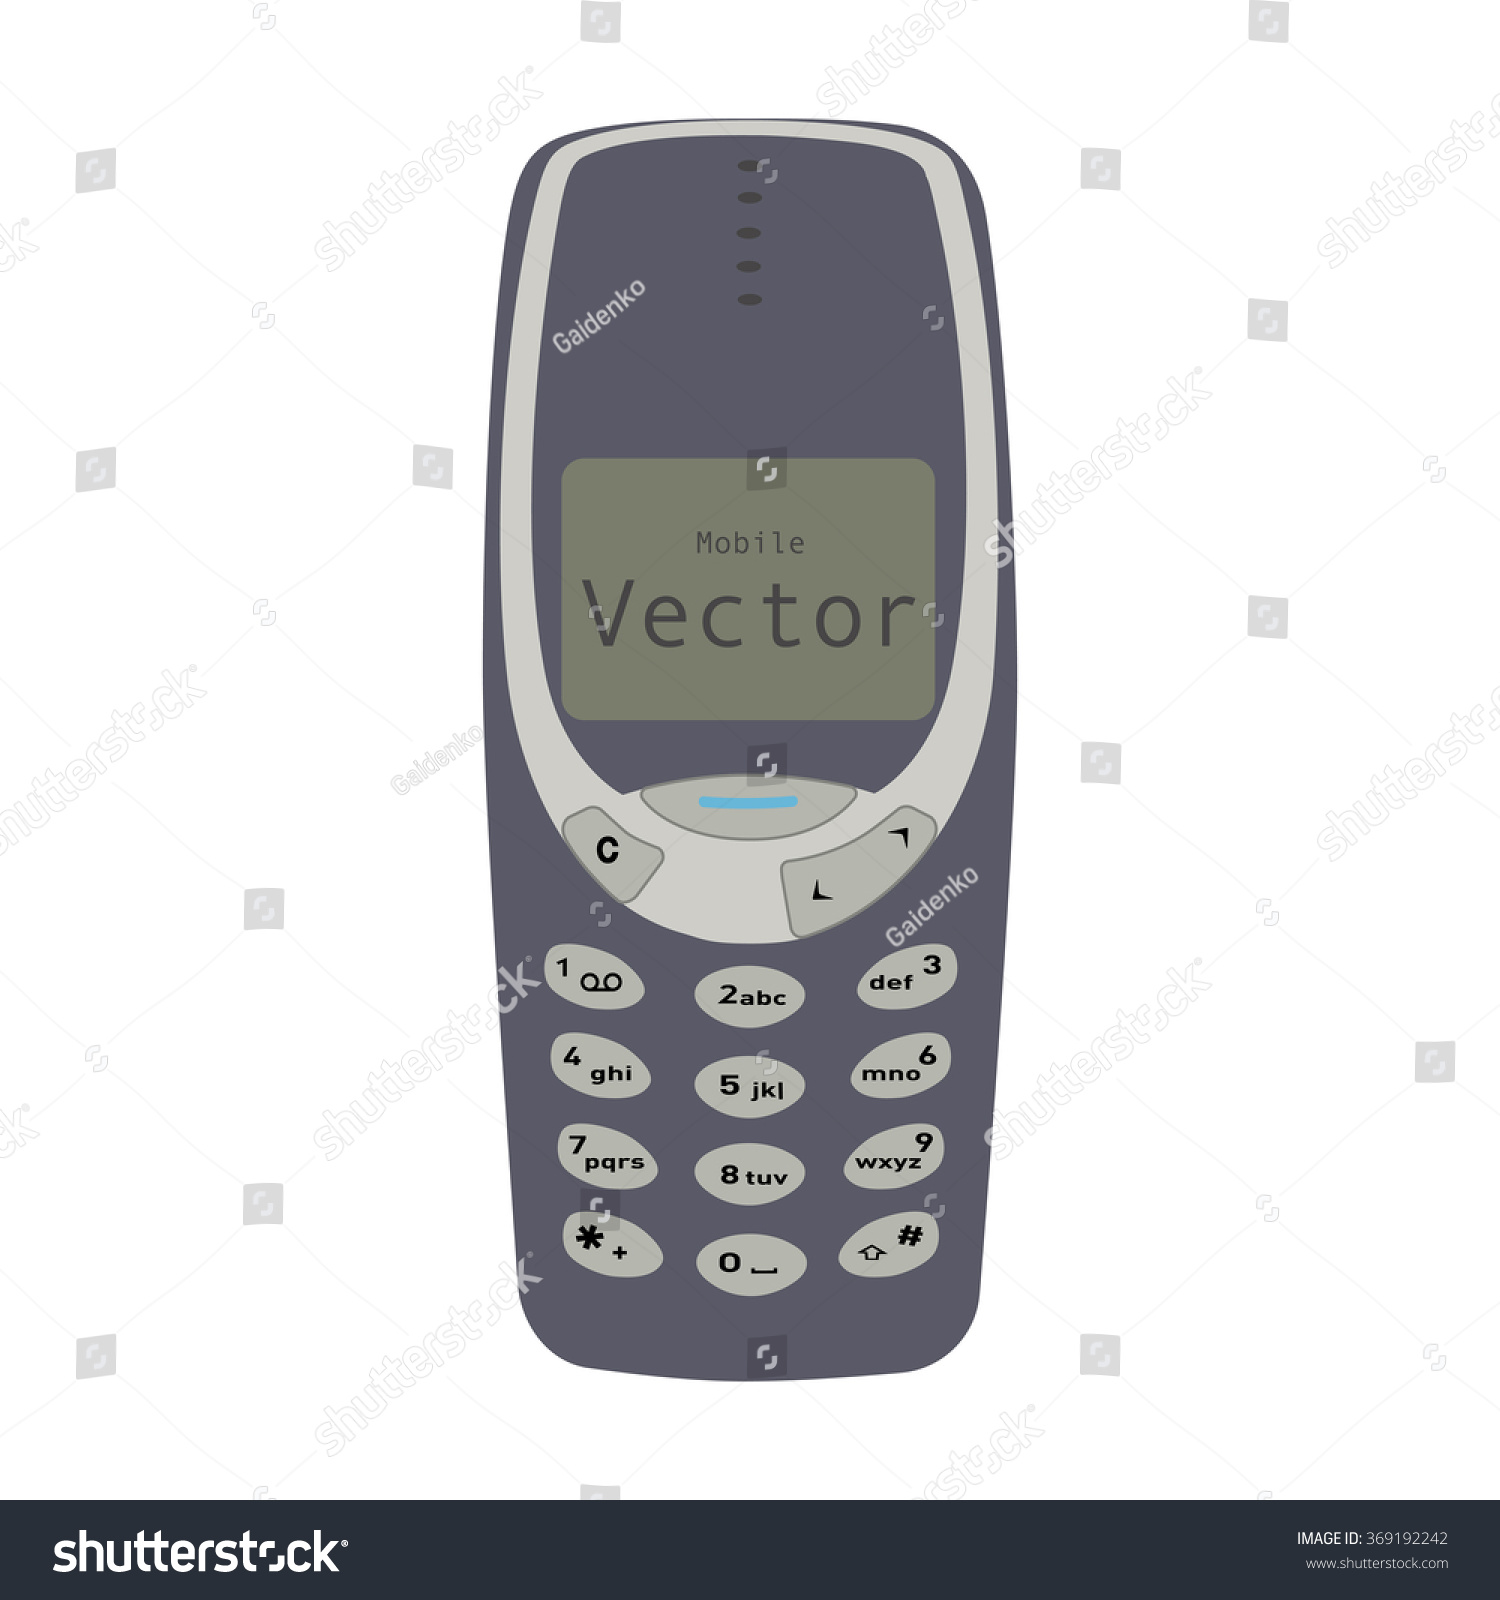 nokia phone clipart - photo #31